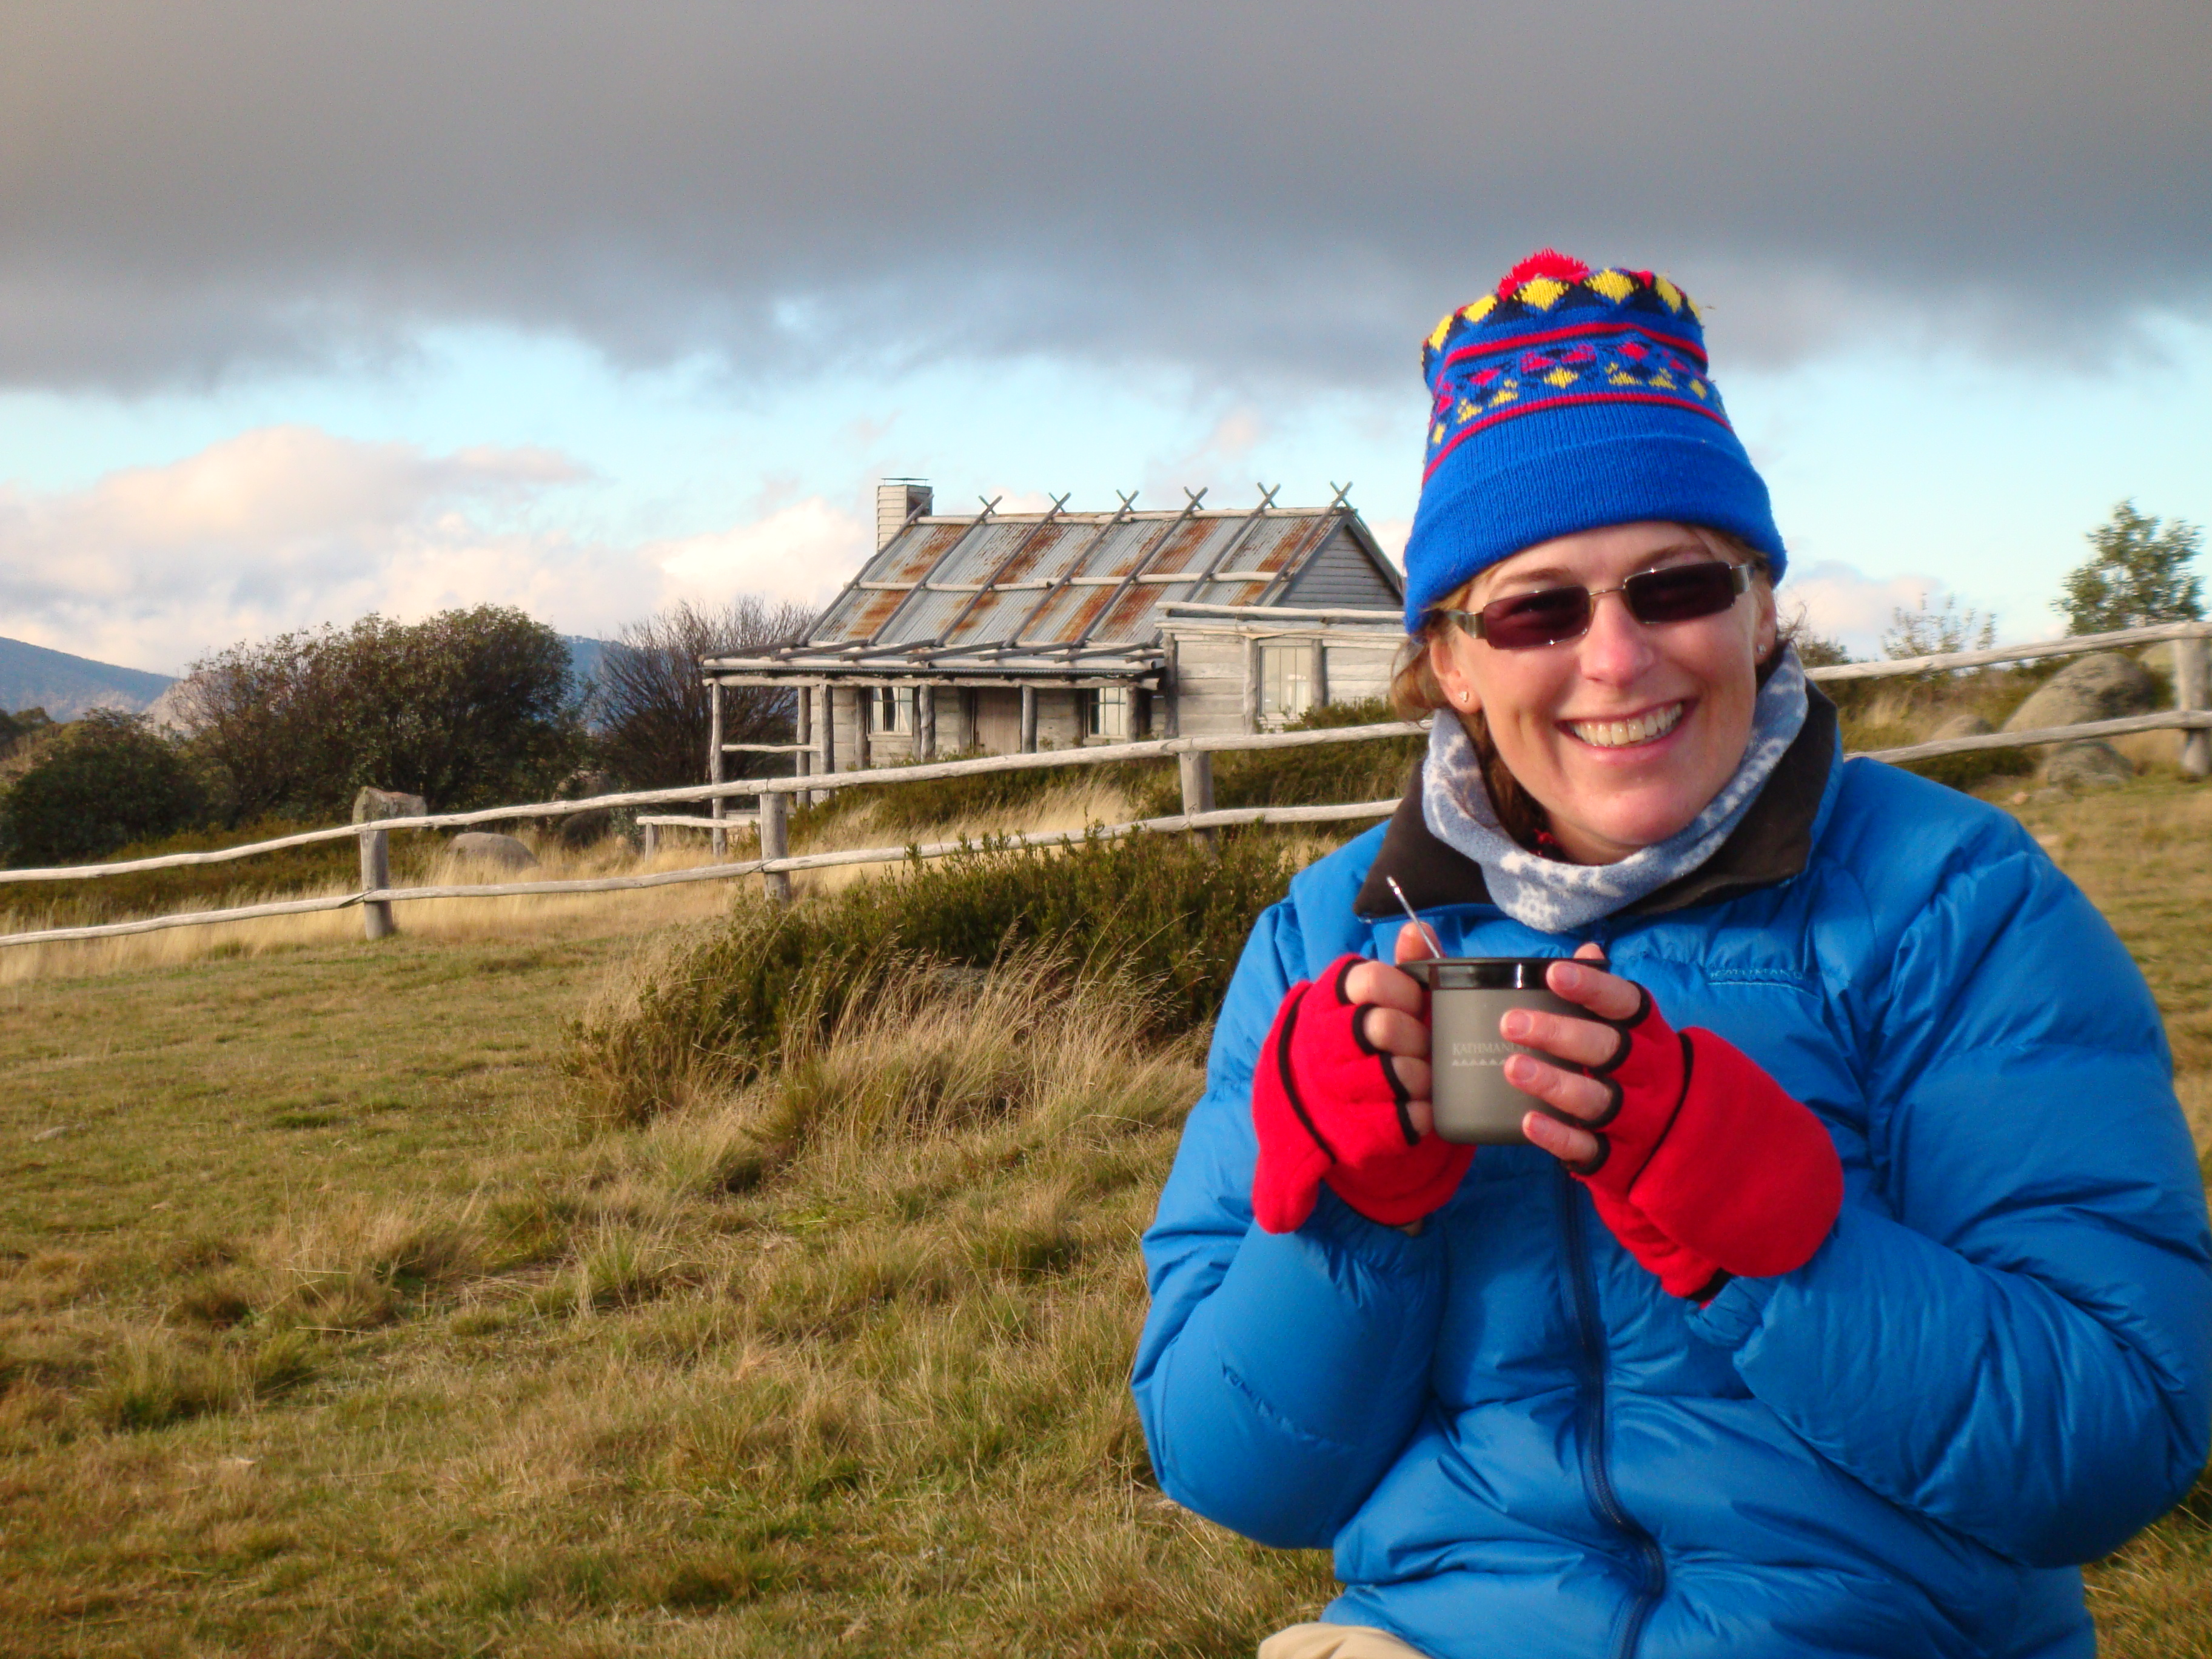 Craig's Hut 21 - an amazing place to enjoy hot chocolate